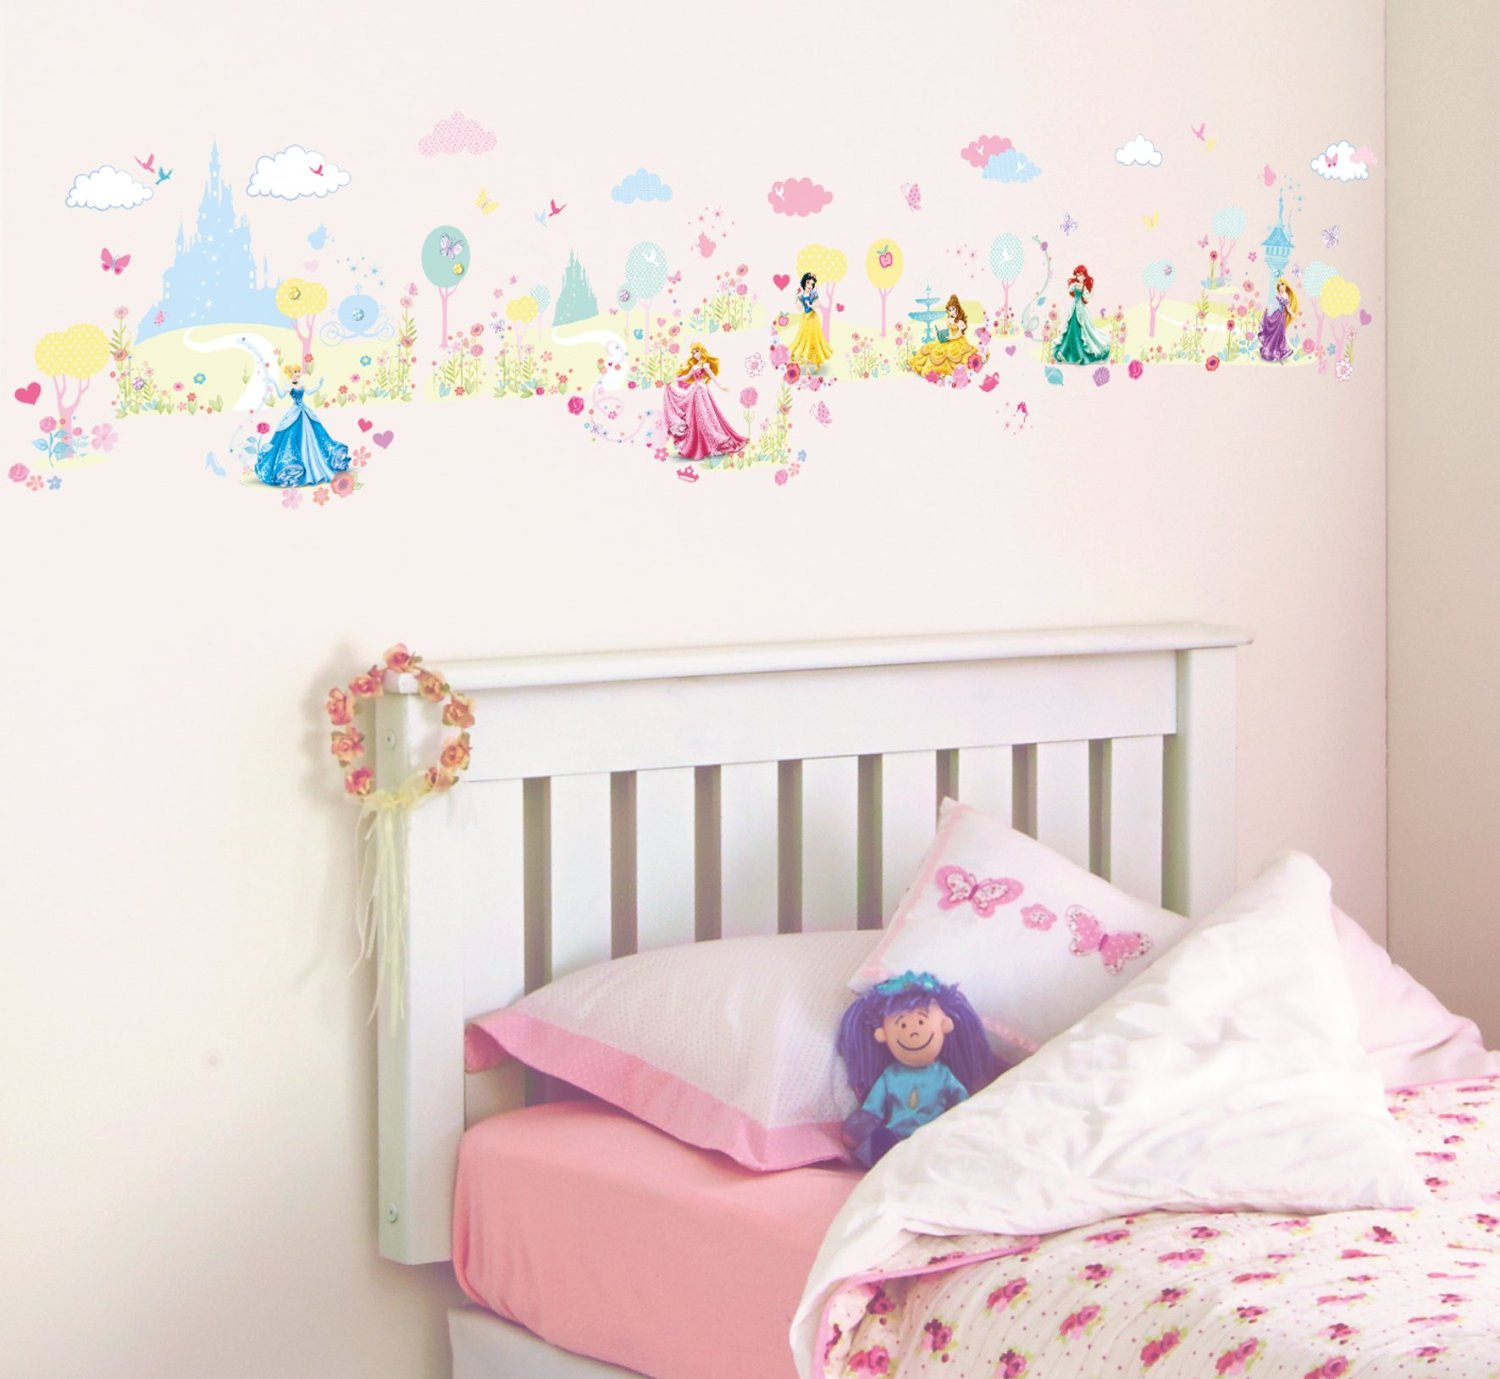 Princess Wallpaper For Bedroom Disney Princess Bedroom Ideas Awesome Princess Style Cute Girlie